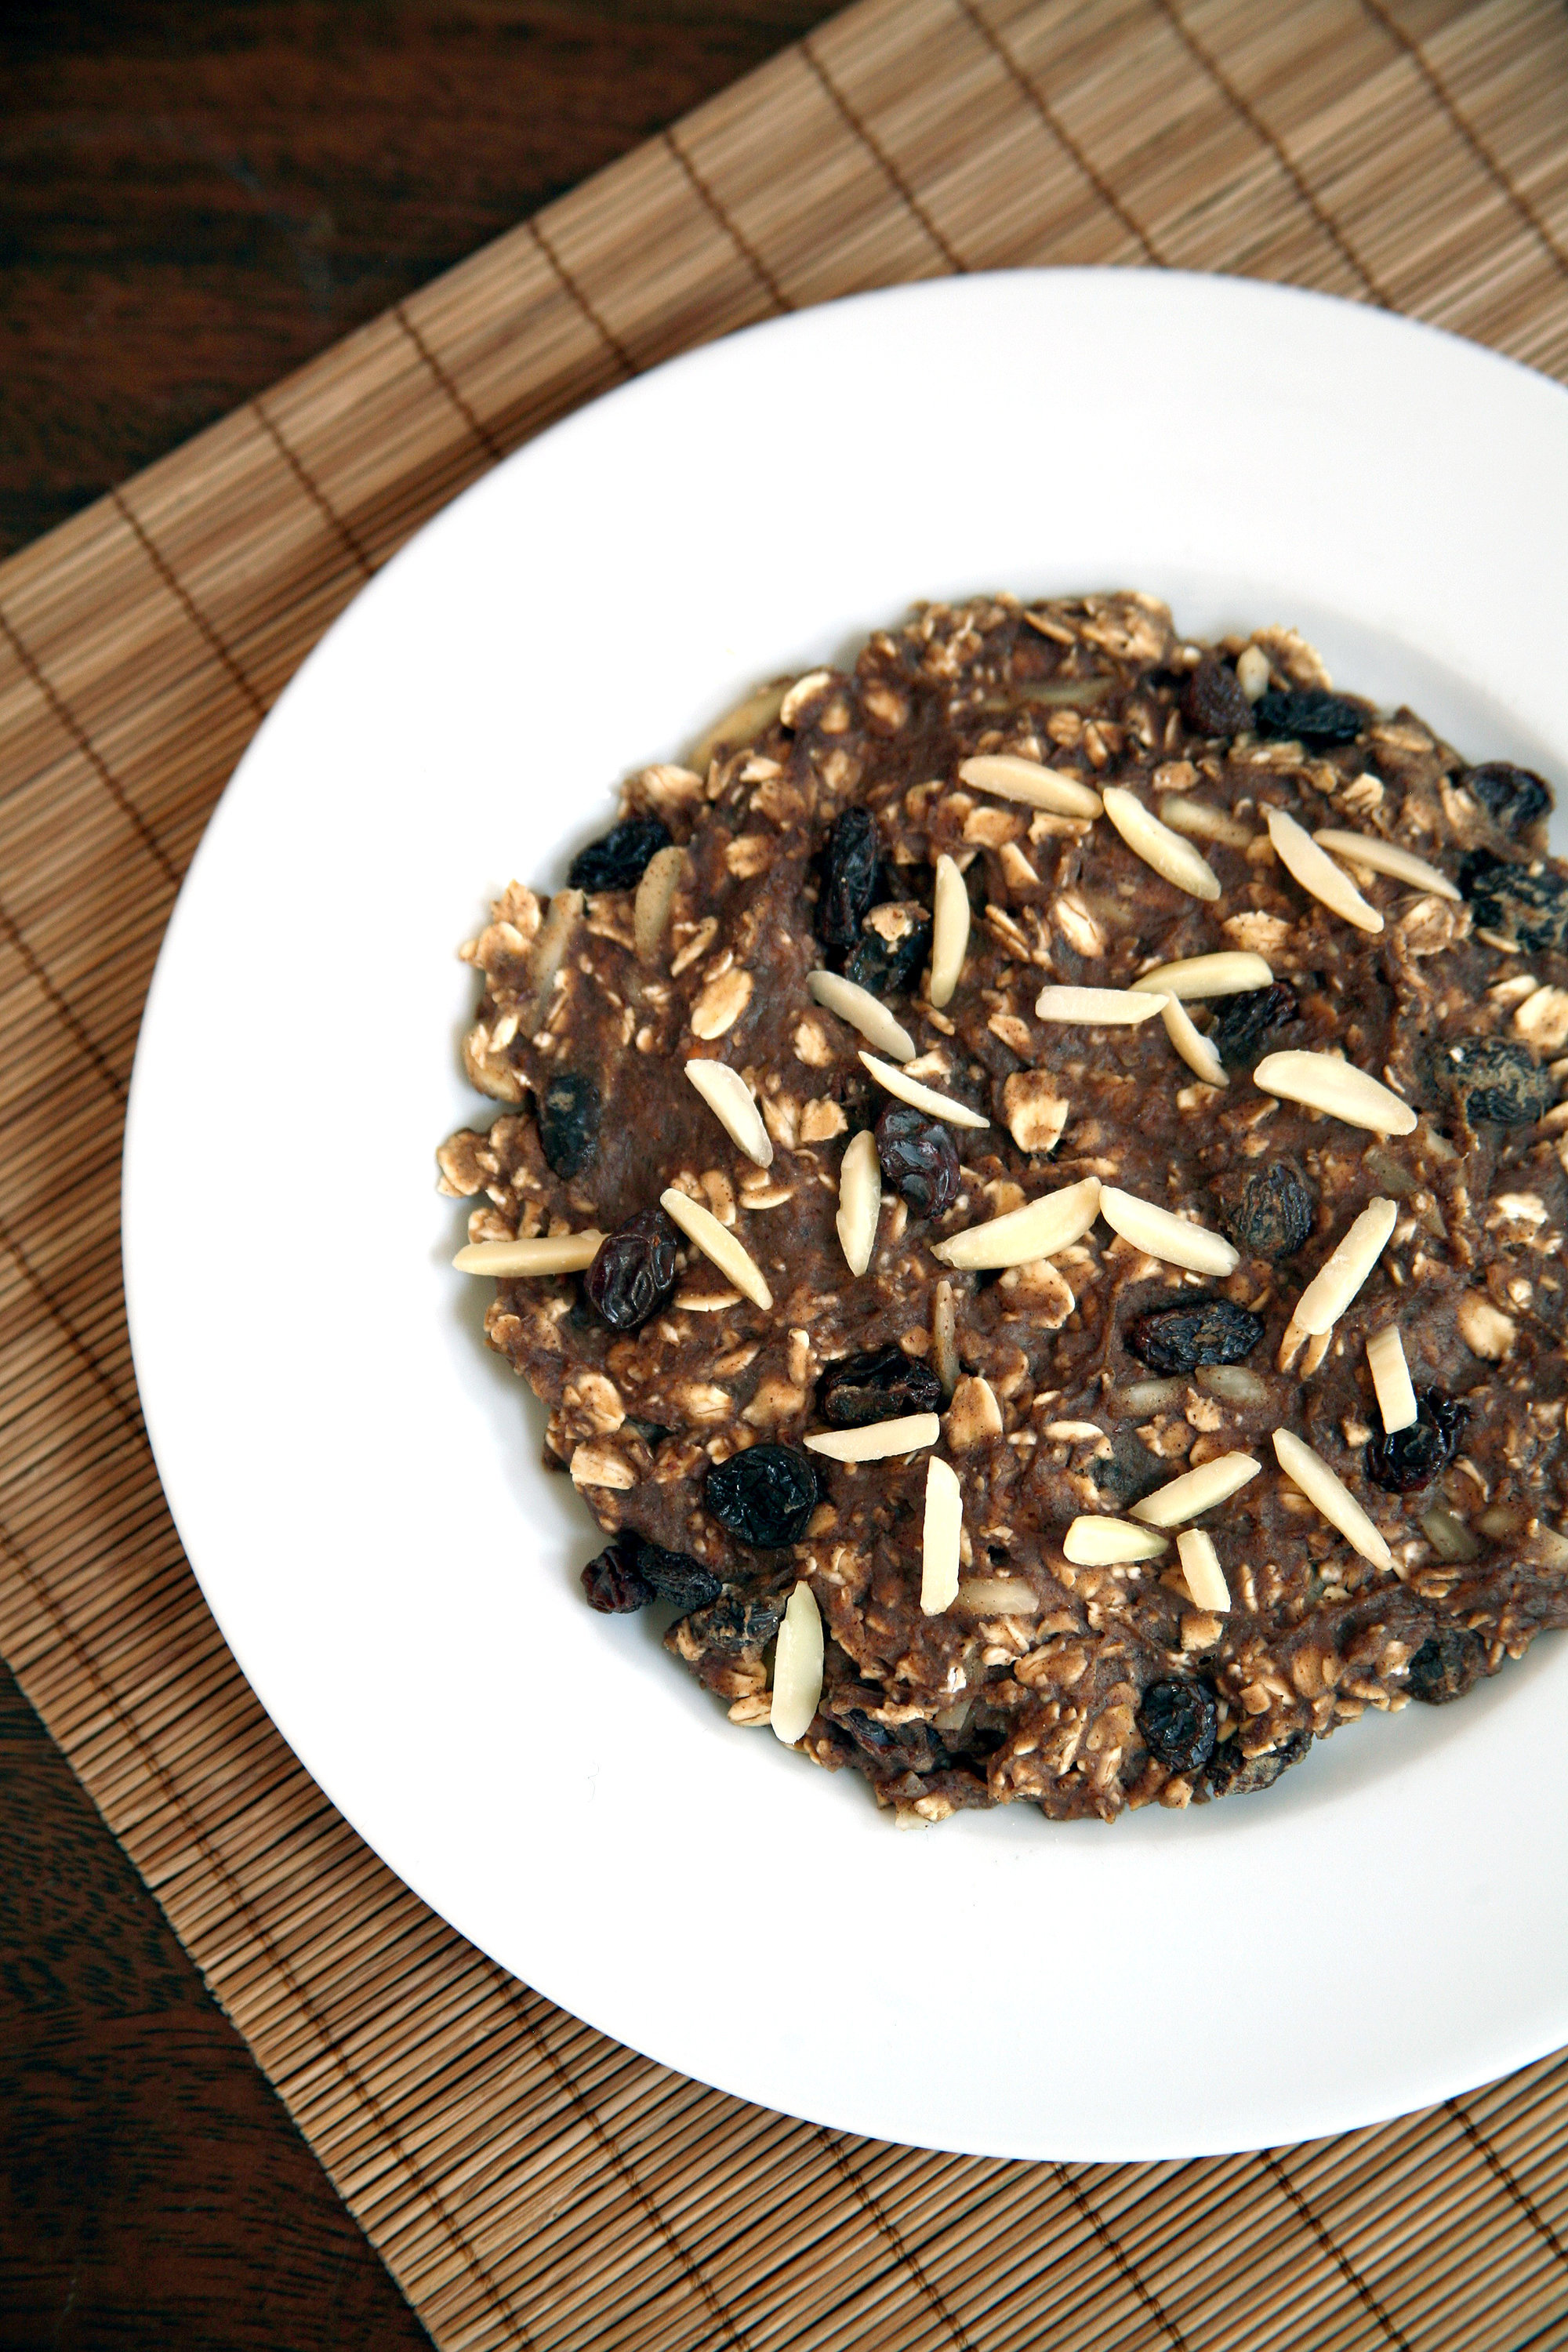 This 5-Minute Breakfast Tastes Like Oatmeal Raisin Cookie Dough